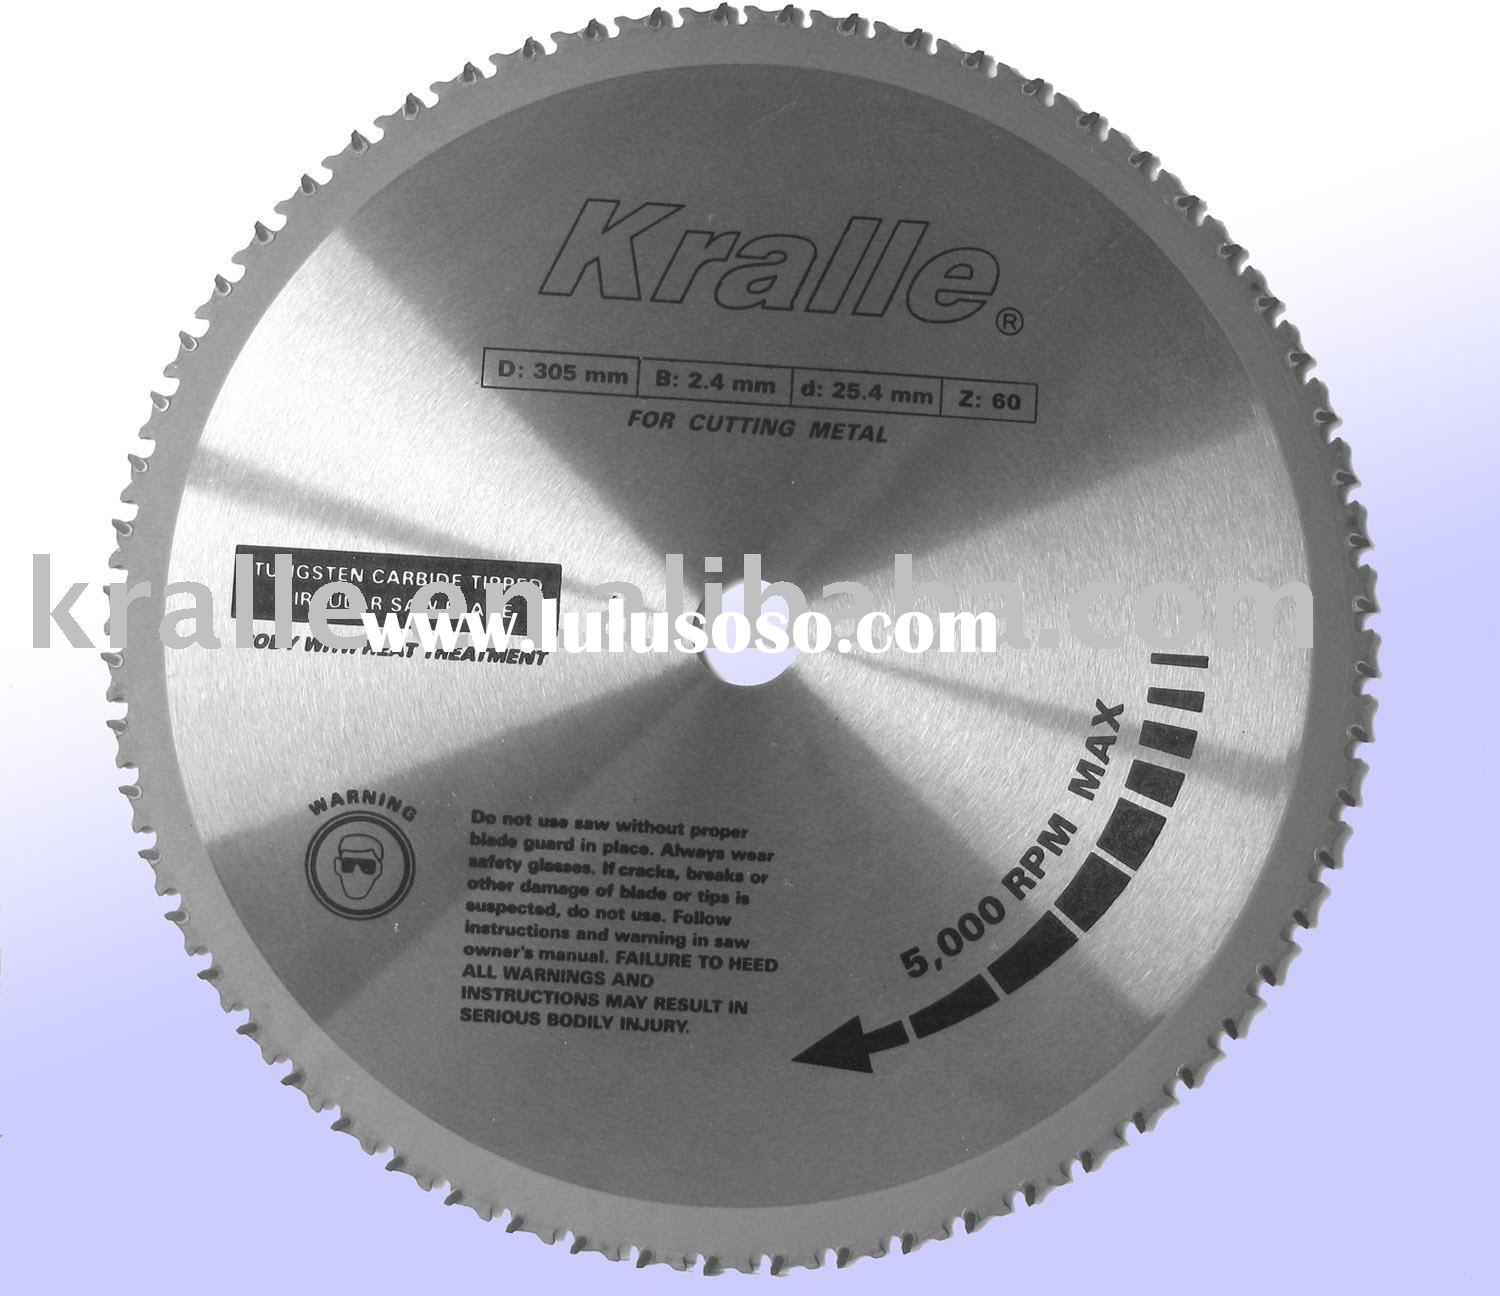 Sell T.C.T. Circular Saw Blade For Cutting Metal